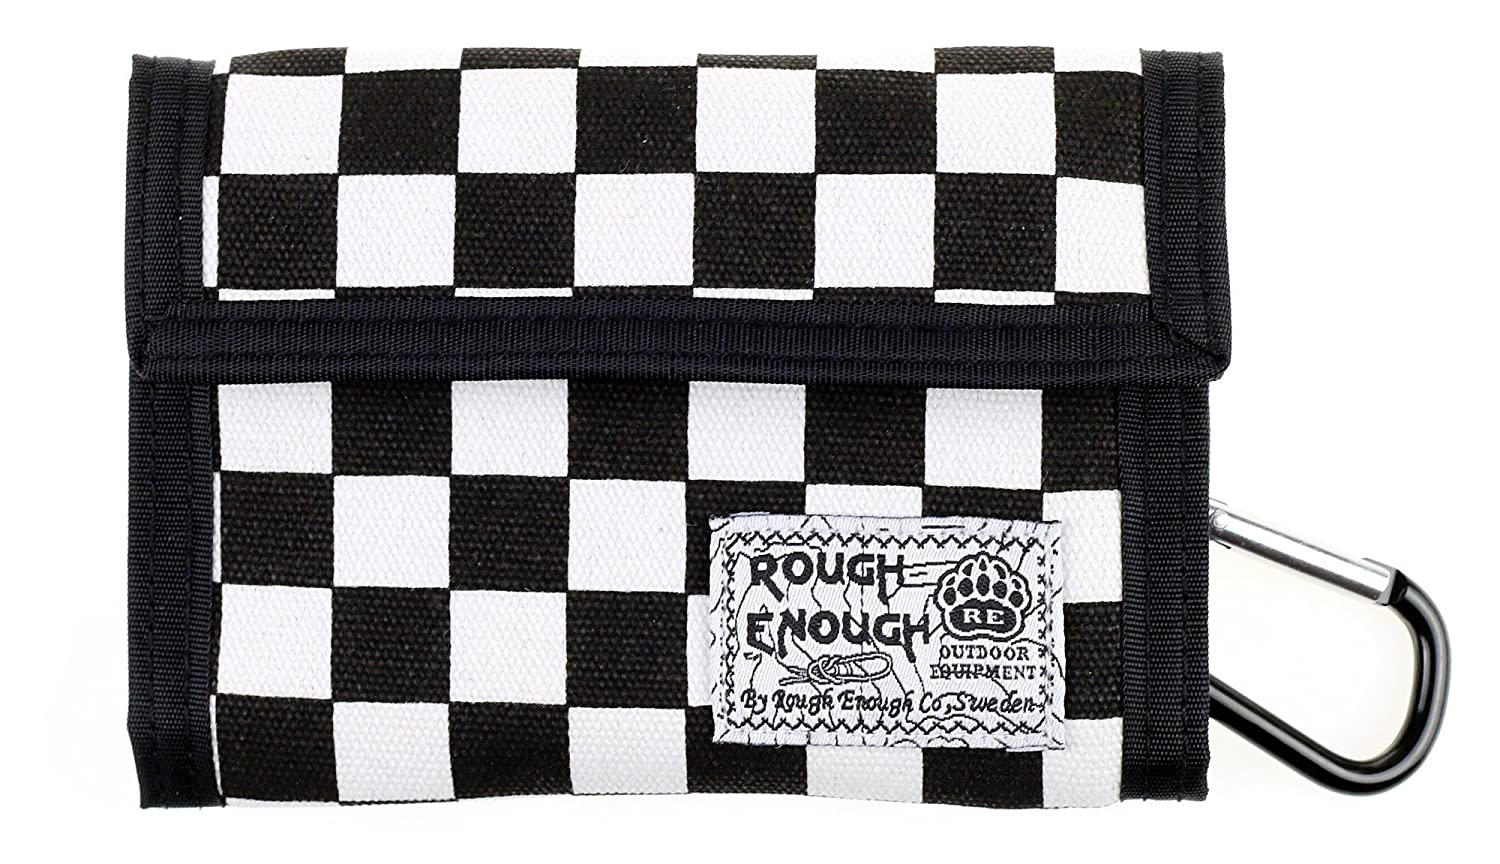 Rough Enough Premium Canvas Checkerboard Checker Plaid Tartan Sports Outdoors Travel Classic Basics Portable Trifold Coin Large Wallet Purse Holder Organizer Case with Zippers for Kids Boys Men Women ROUGH ENOUGH INC.